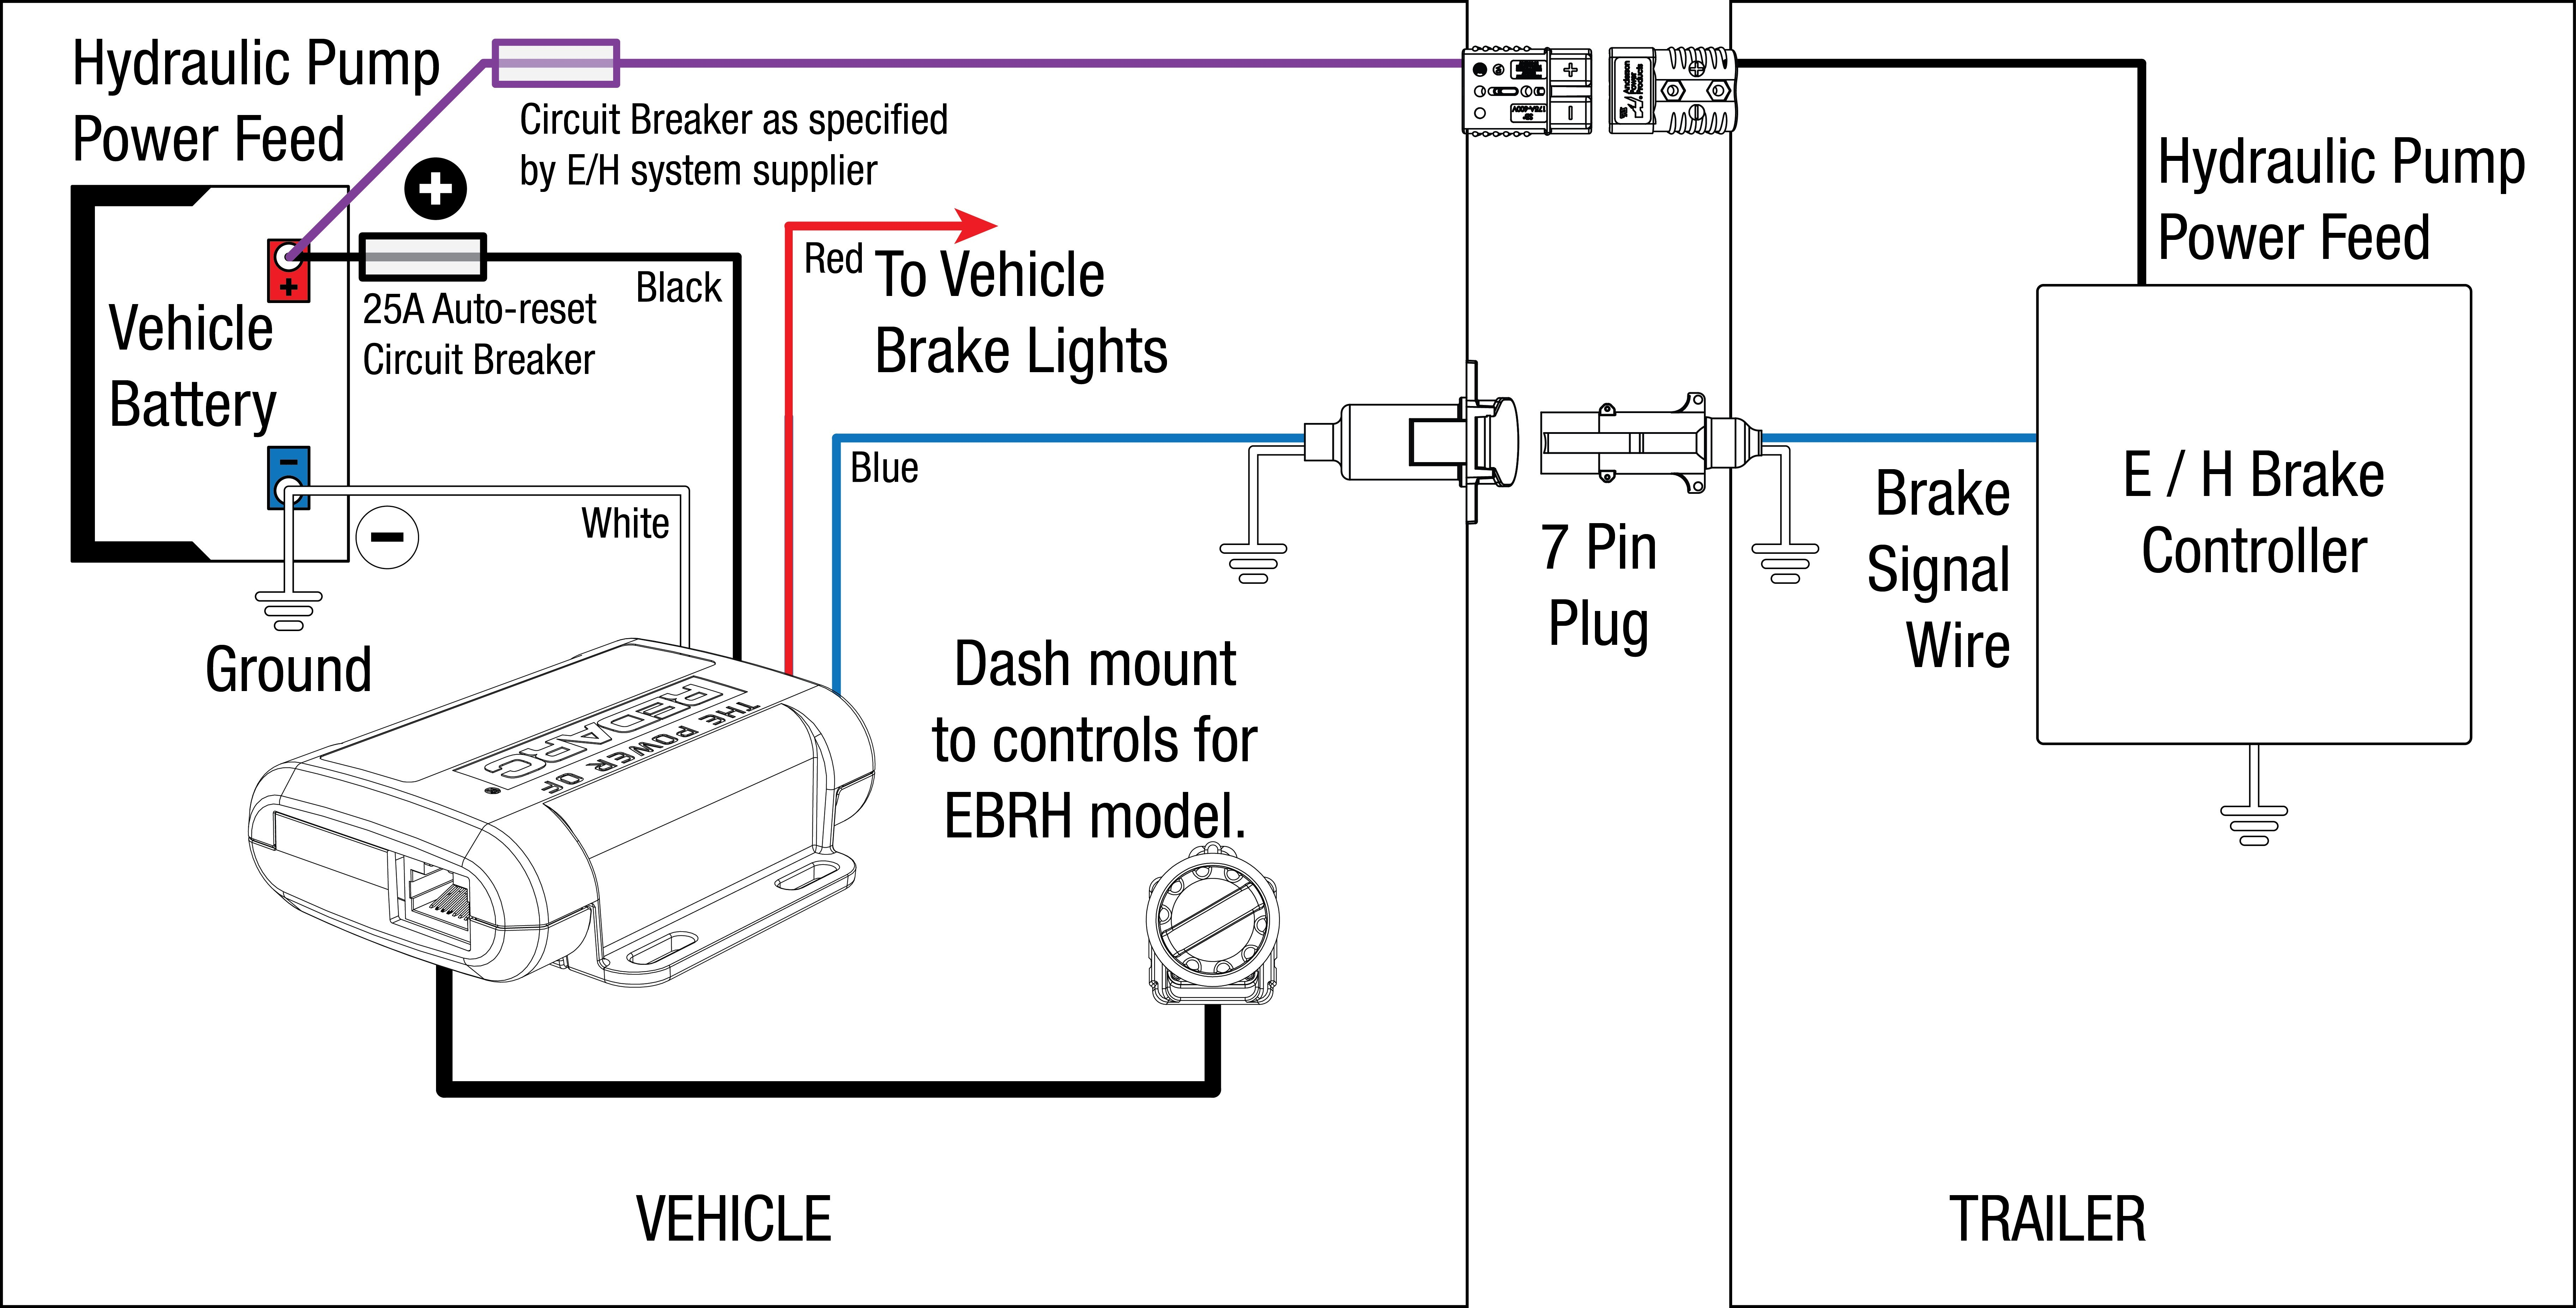 Tail Light Wiring Diagram Chevy Luxury 3 Wire Tail Light Wiring Diagram Diagram Of Tail Light Wiring Diagram Chevy